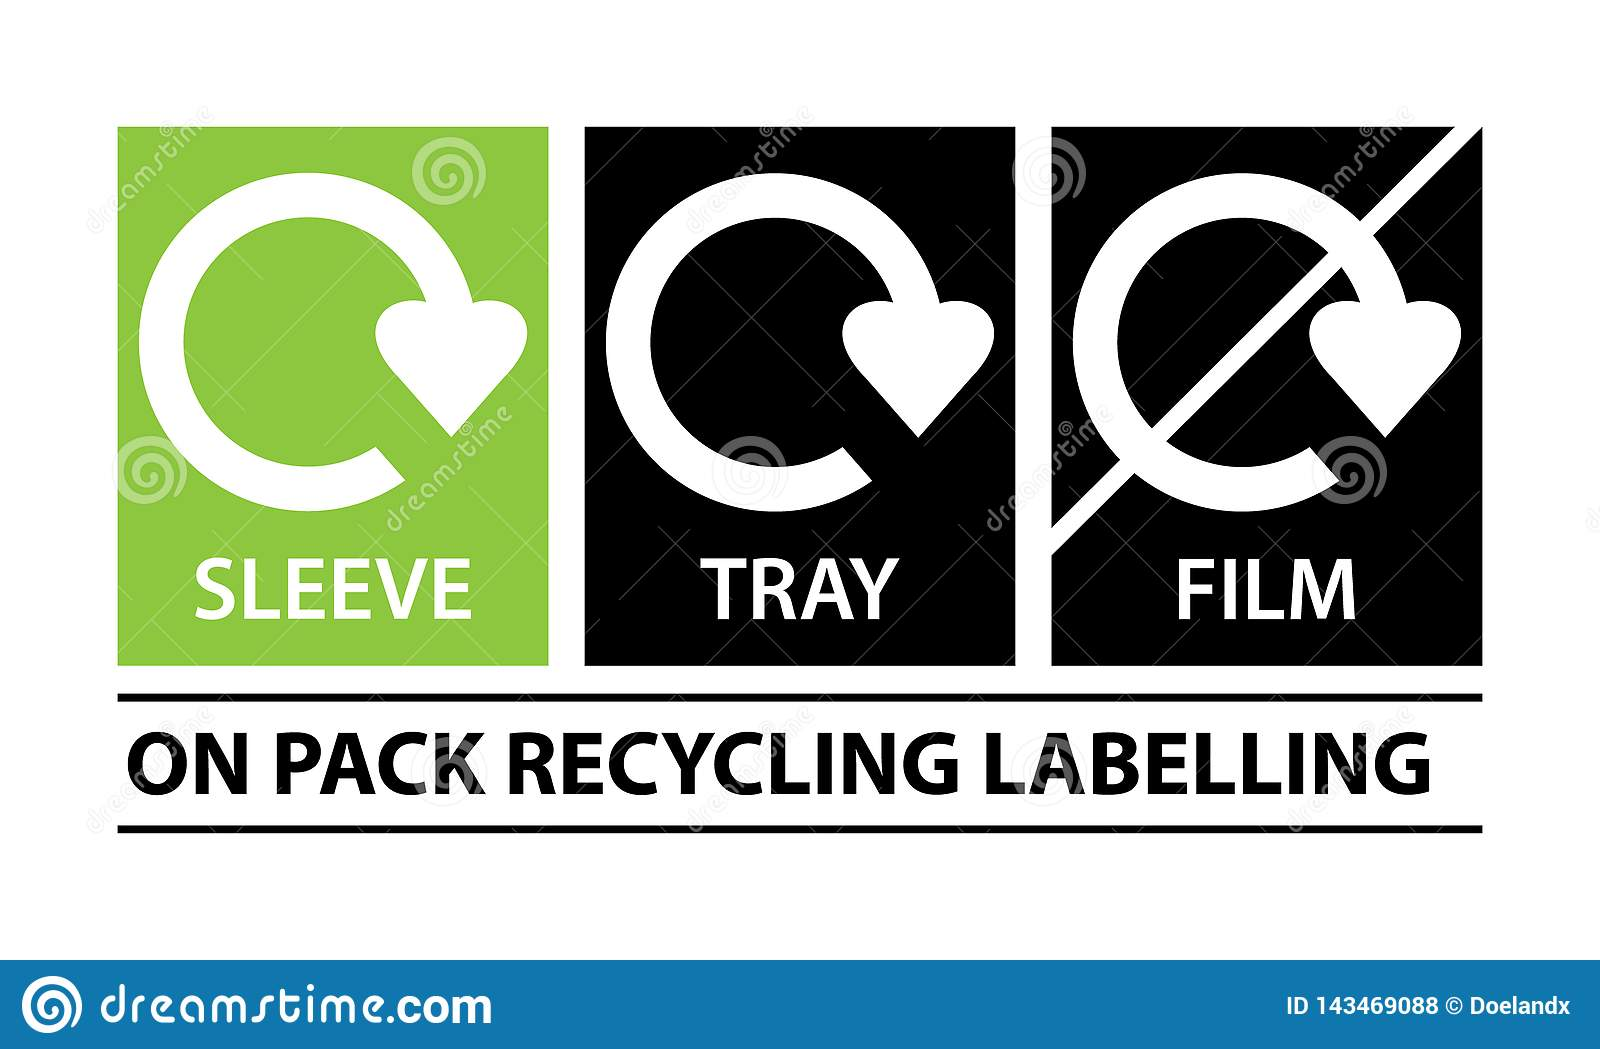 On Pack Recycling Labels vector